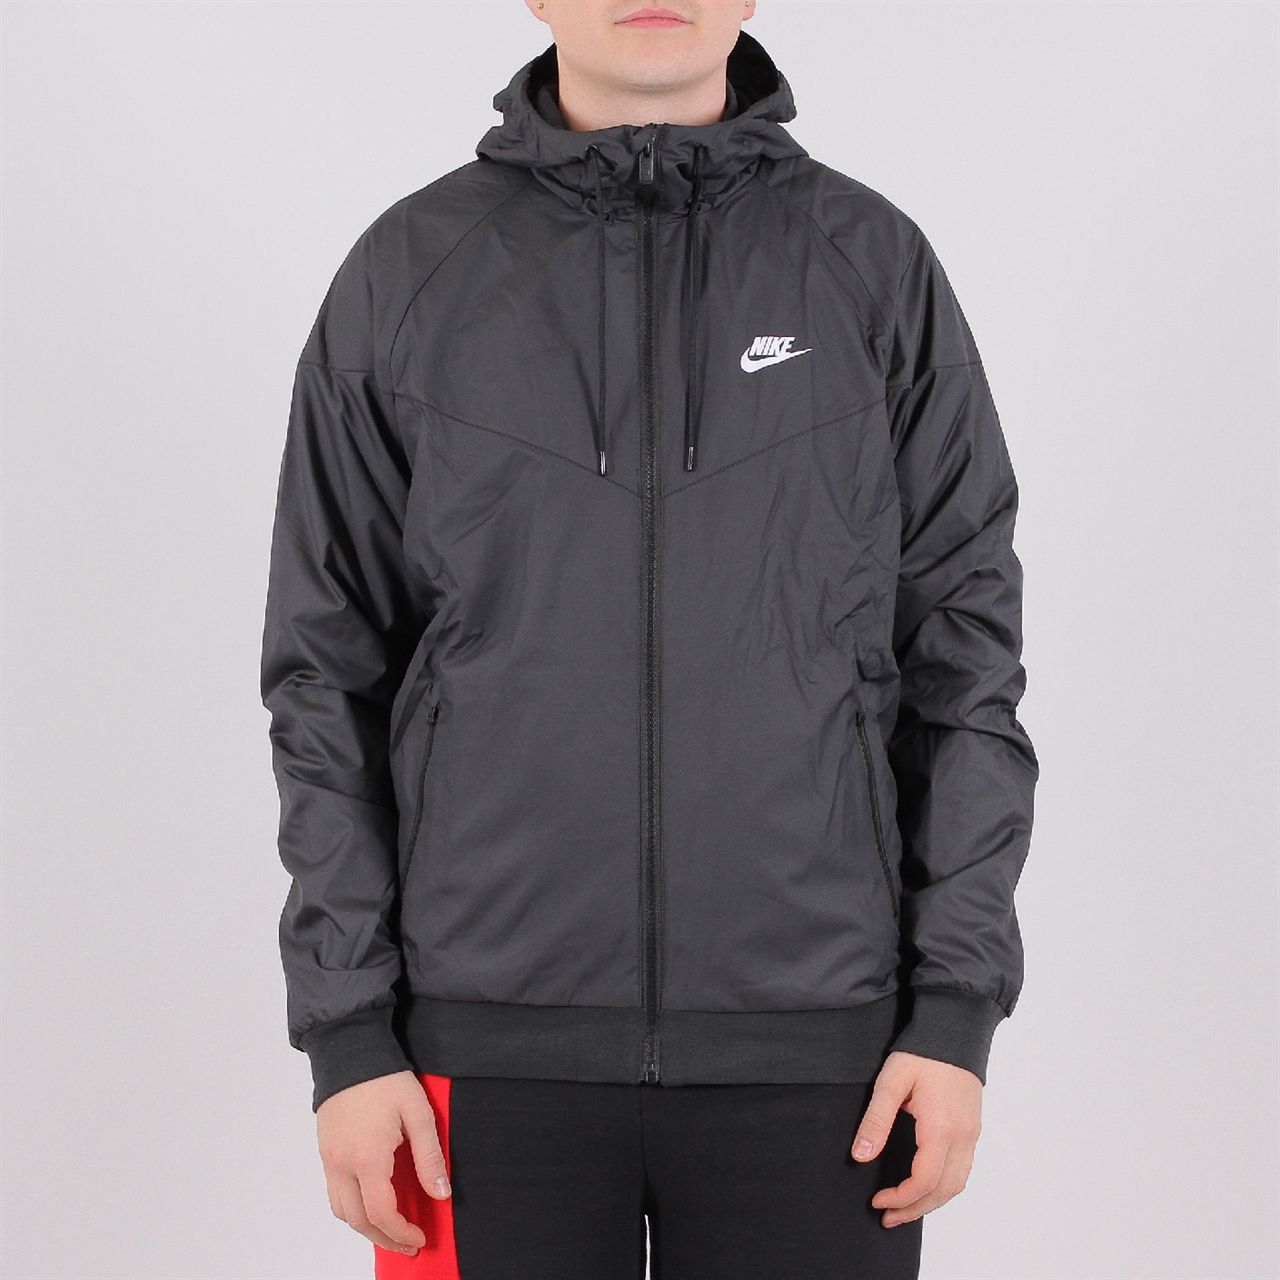 pretty nice a2707 13e56 Windrunner Jacket (727324-010)